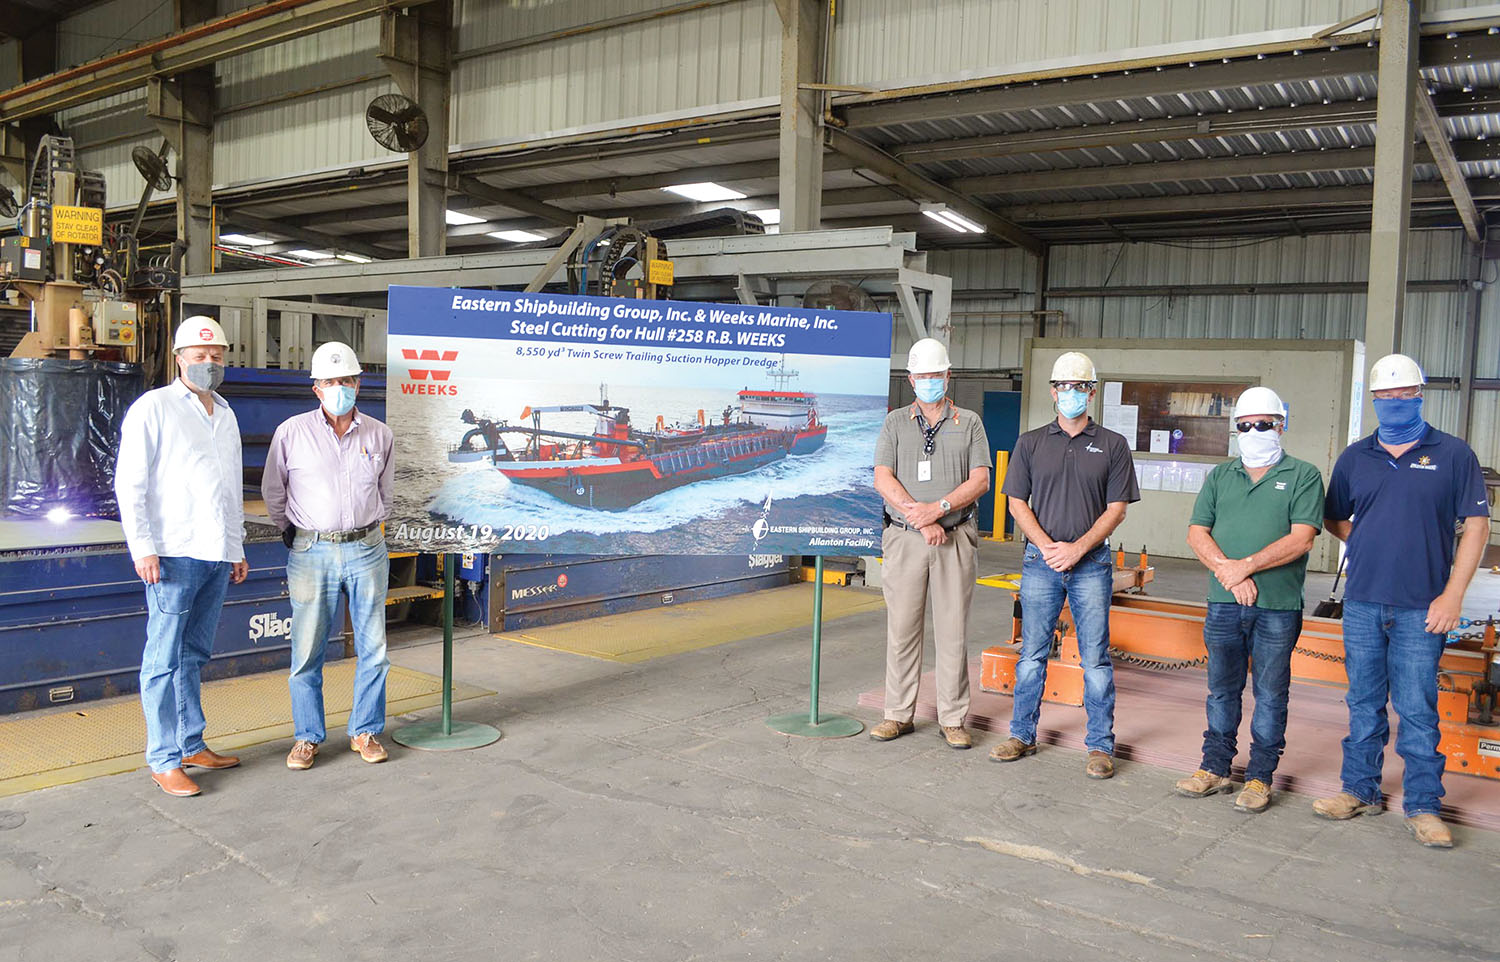 Hans Bloomberg of Weeks Marine Inc., left, stands with Eastern Shipbuilding Group representatives Brian D'Isernia, Kenneth Munroe, Jamie Keel, Benny Bramblette and Bob Babb at a ceremony celebrating the steel cutting for the R.B. Weeks.